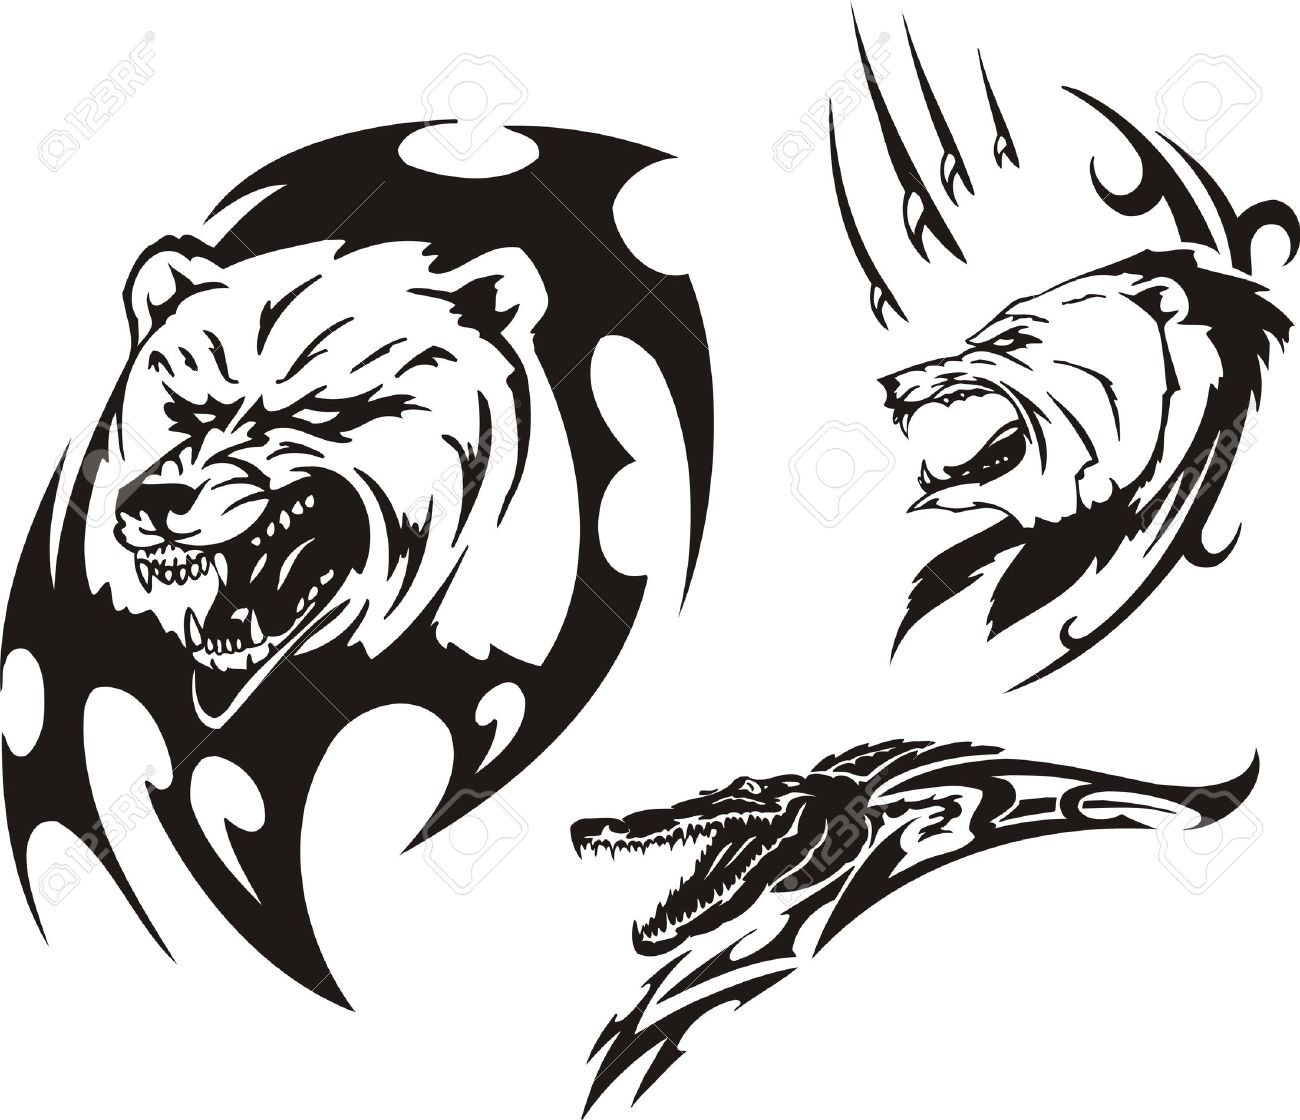 e01a092c736a8 Mouth of a crocodile and two bears. Tribal predators. Vector illustration  ready for vinyl